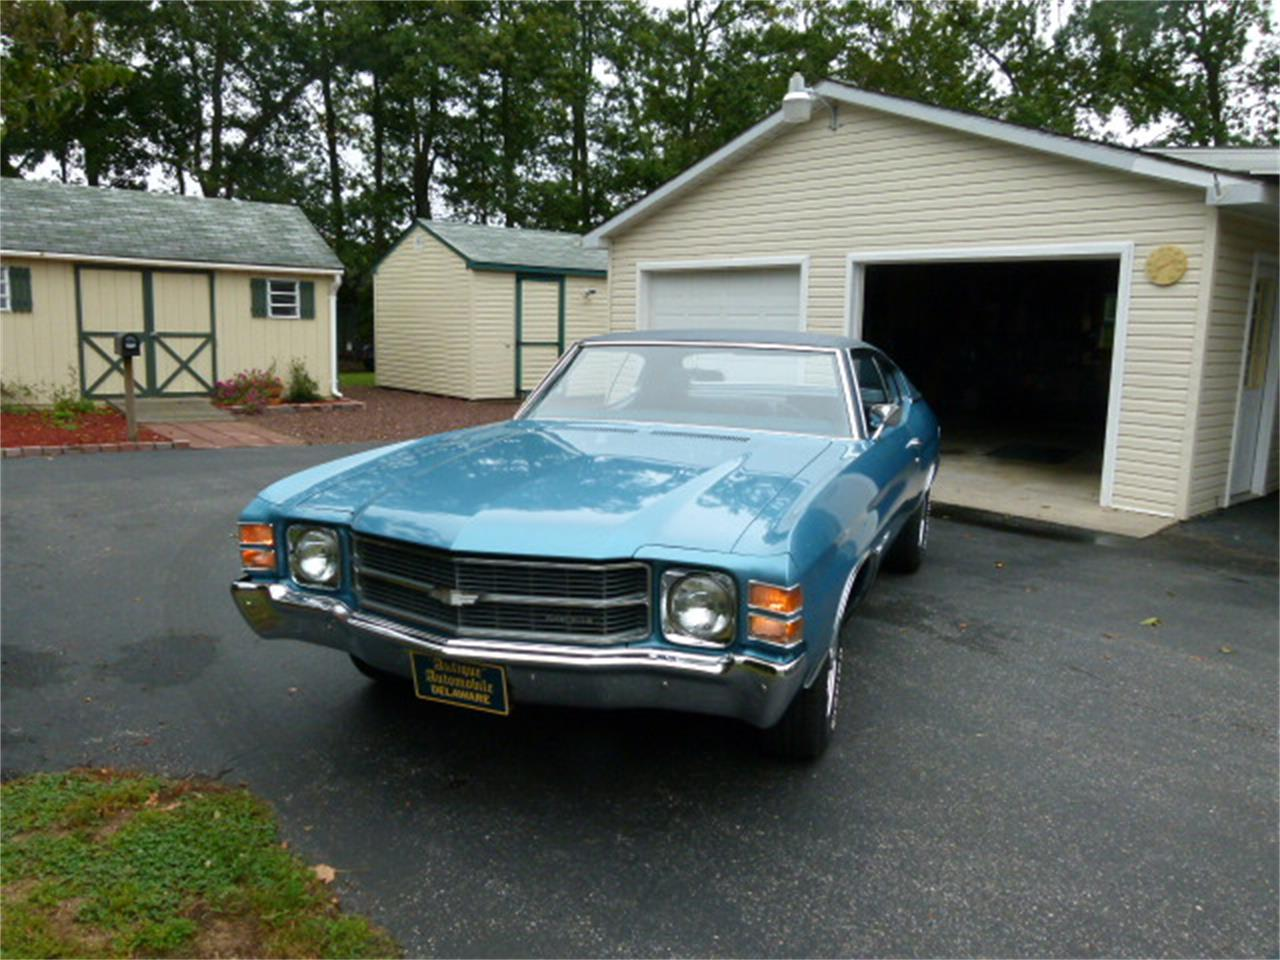 Large Picture of Classic 1971 Chevelle - $29,000.00 Offered by a Private Seller - N3CN